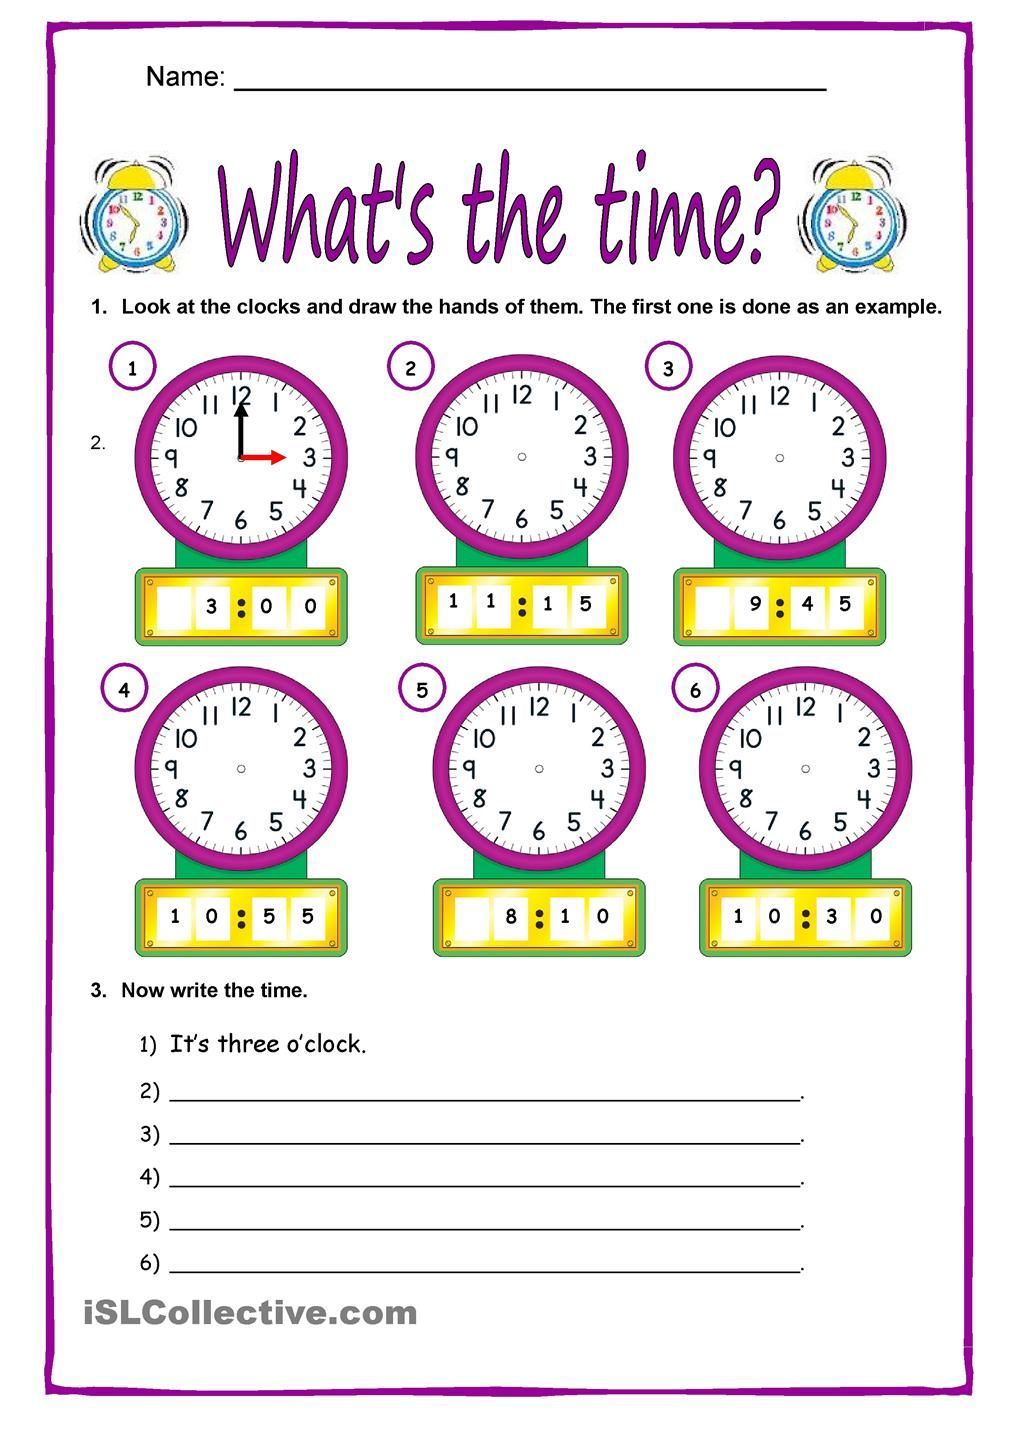 What S The Time English Teaching Materials Reading Comprehension Lessons English Lessons [ 1440 x 1018 Pixel ]